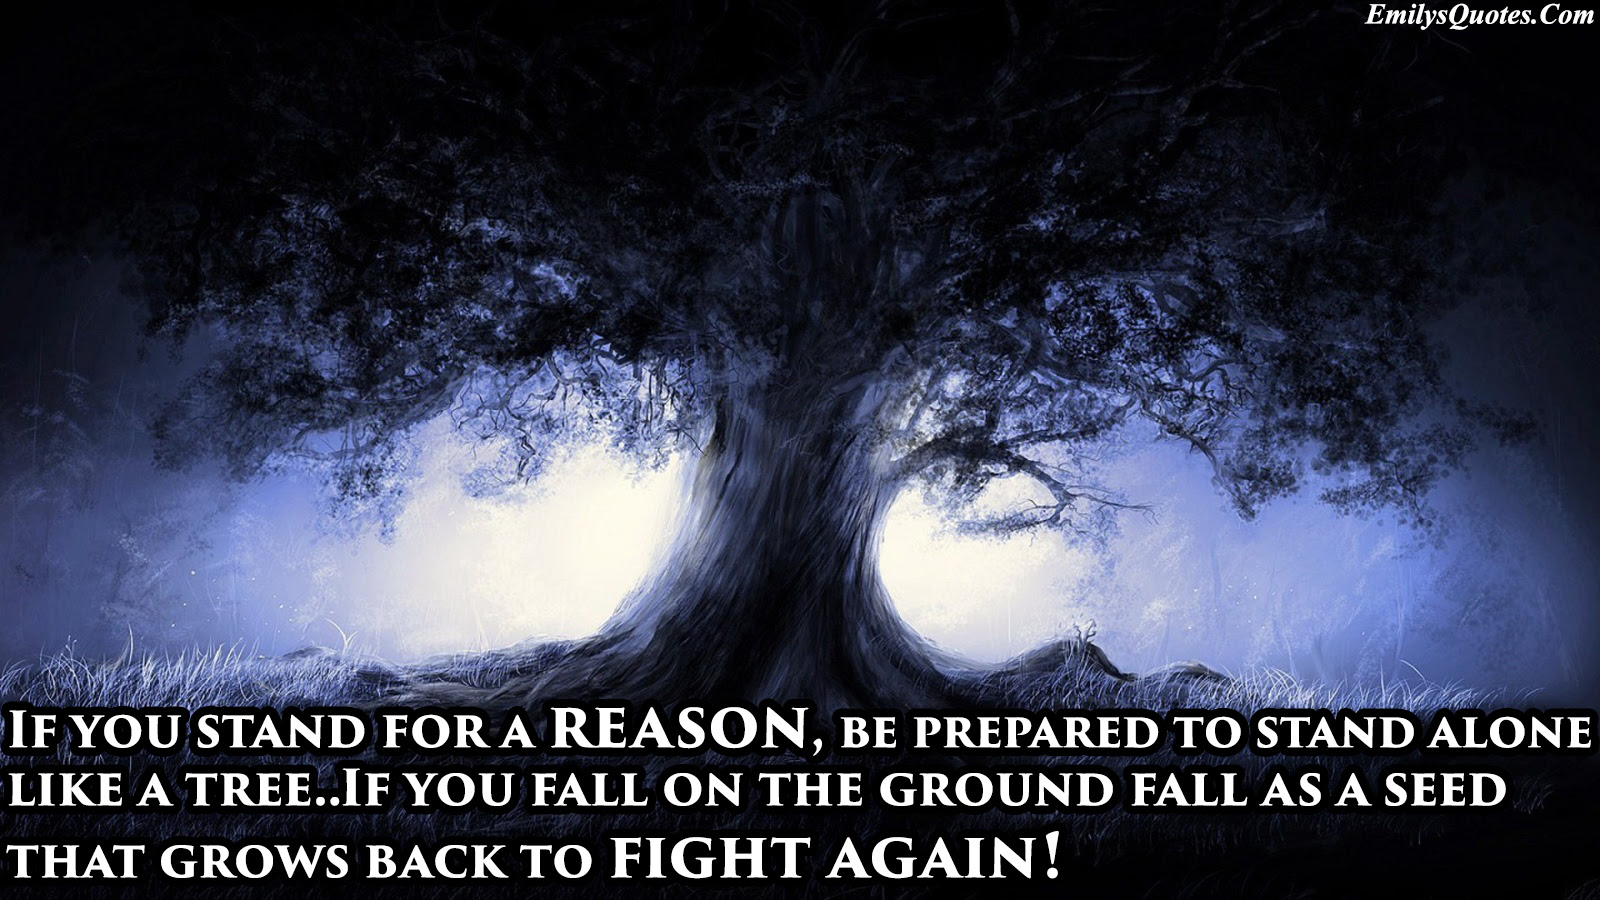 If You Stand For A Reason Be Prepared To Stand Alone Like A Tree